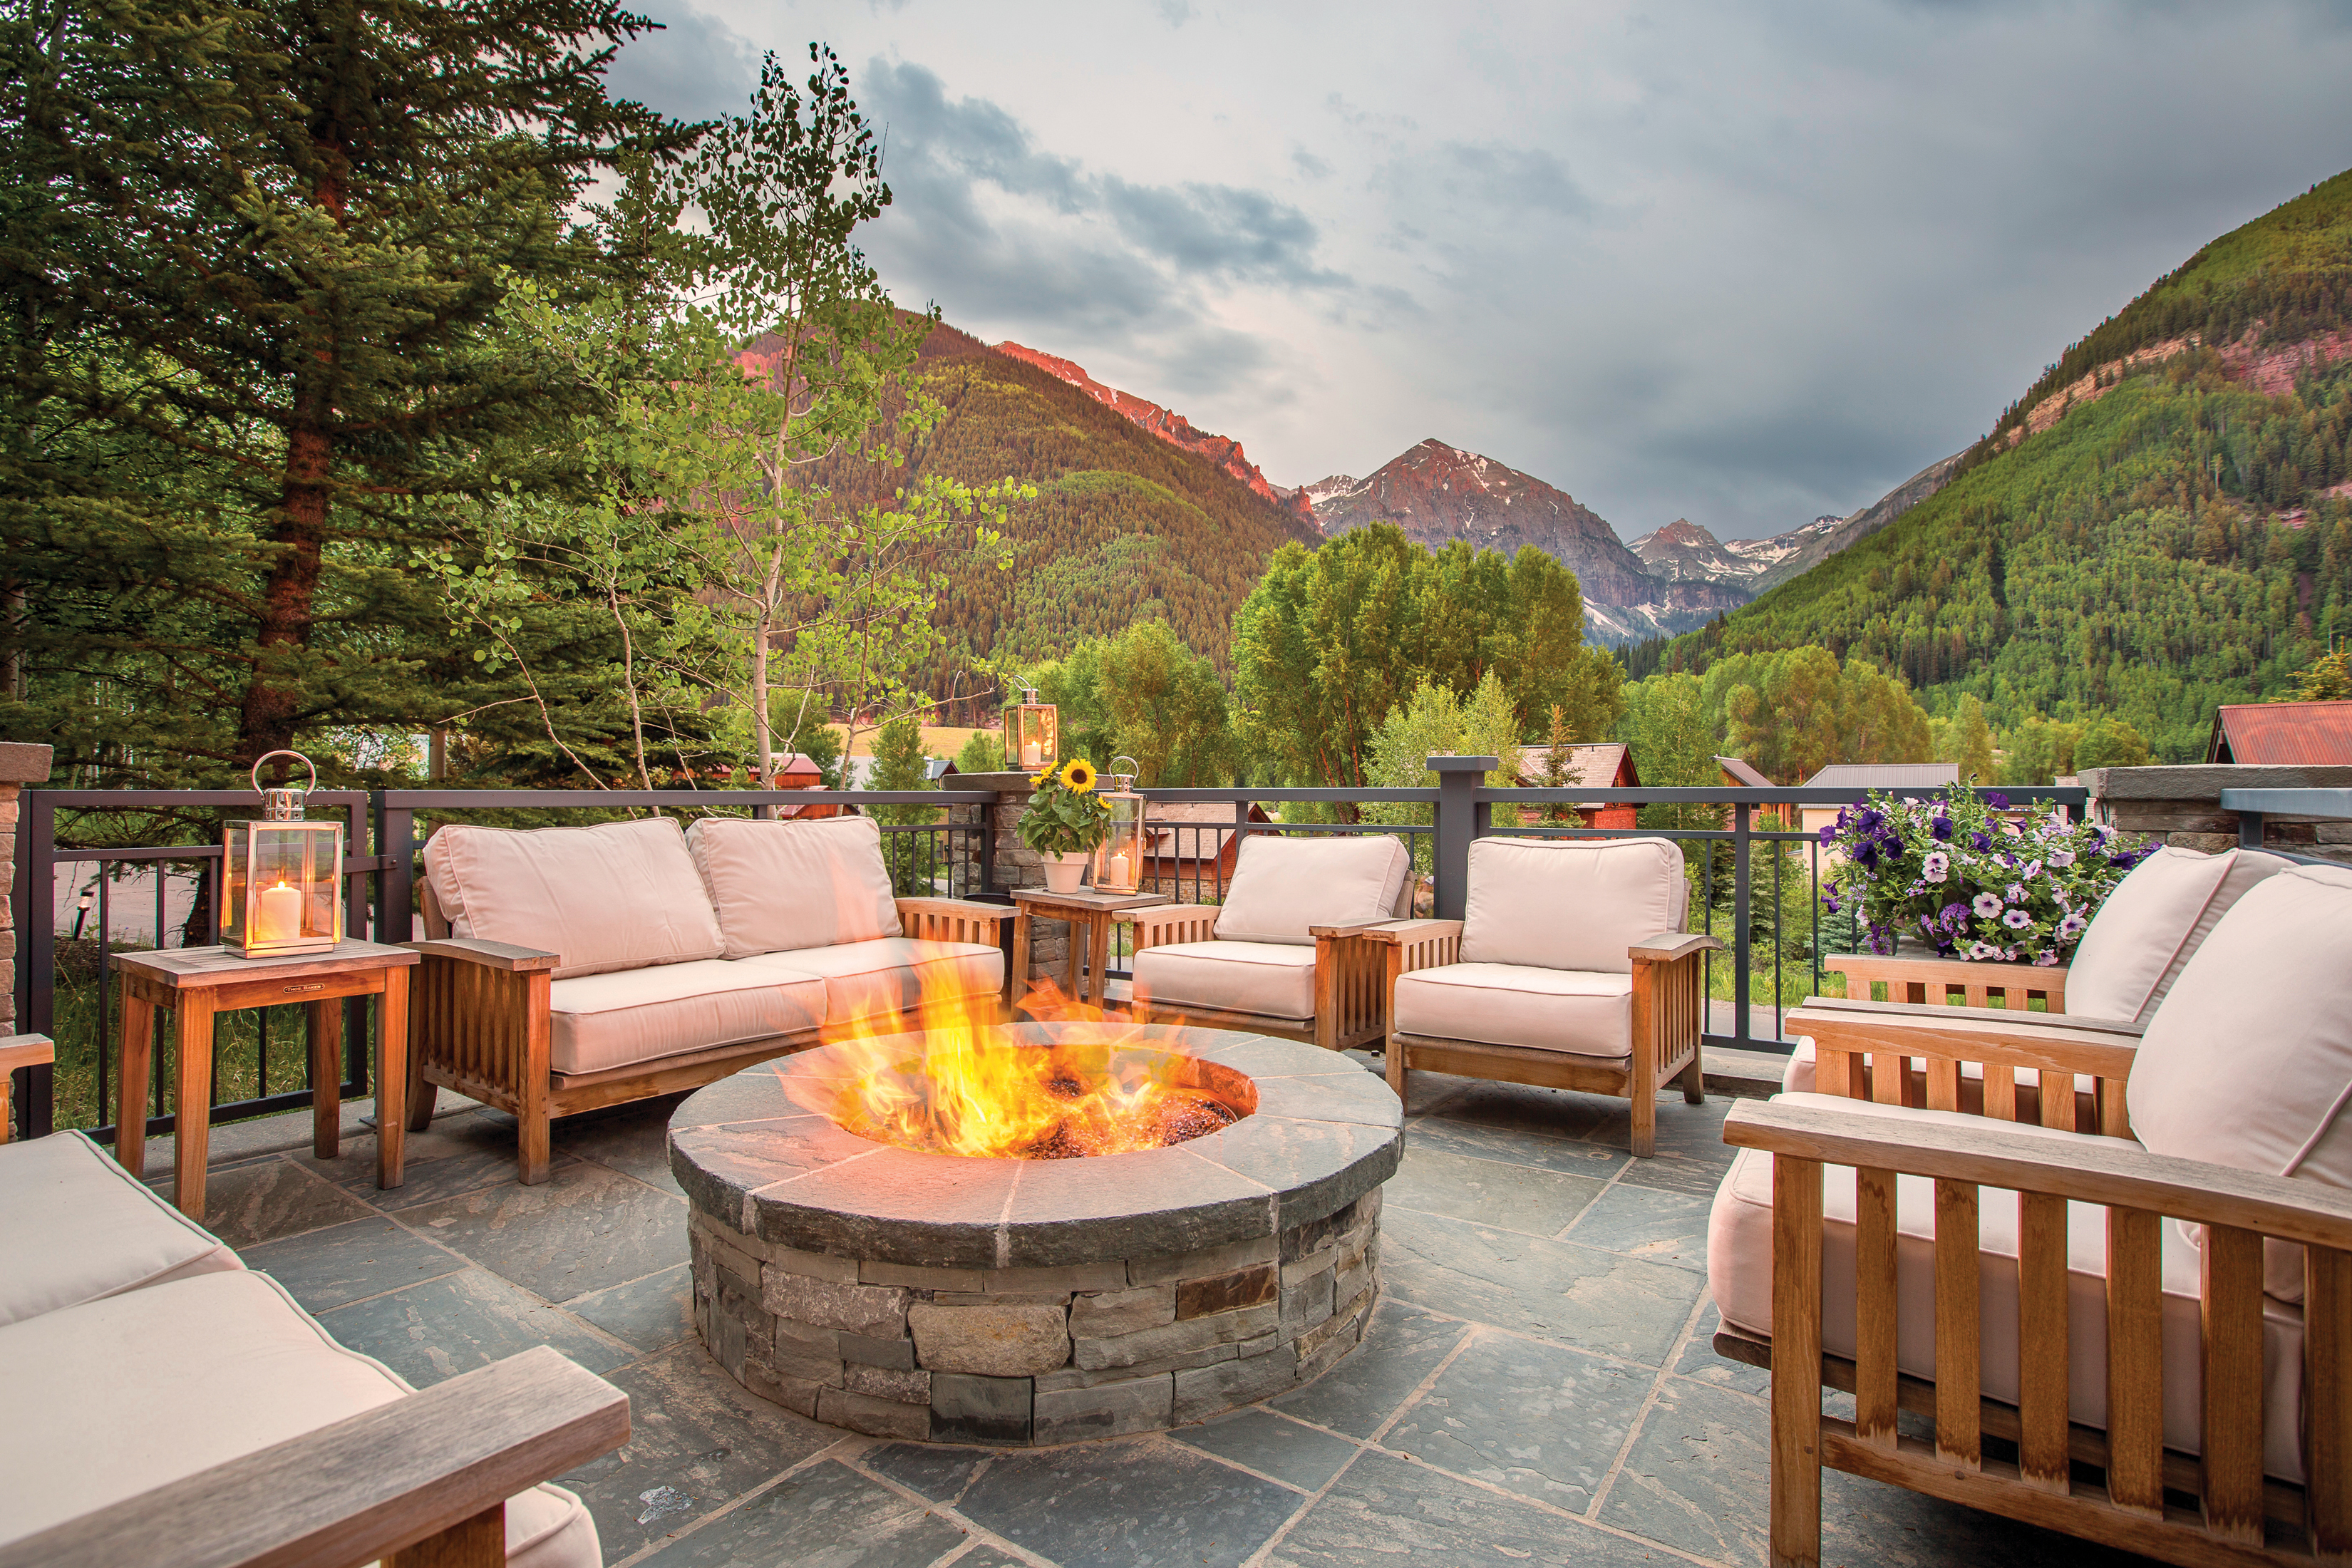 609 Columbia, Telluride, Colorado.